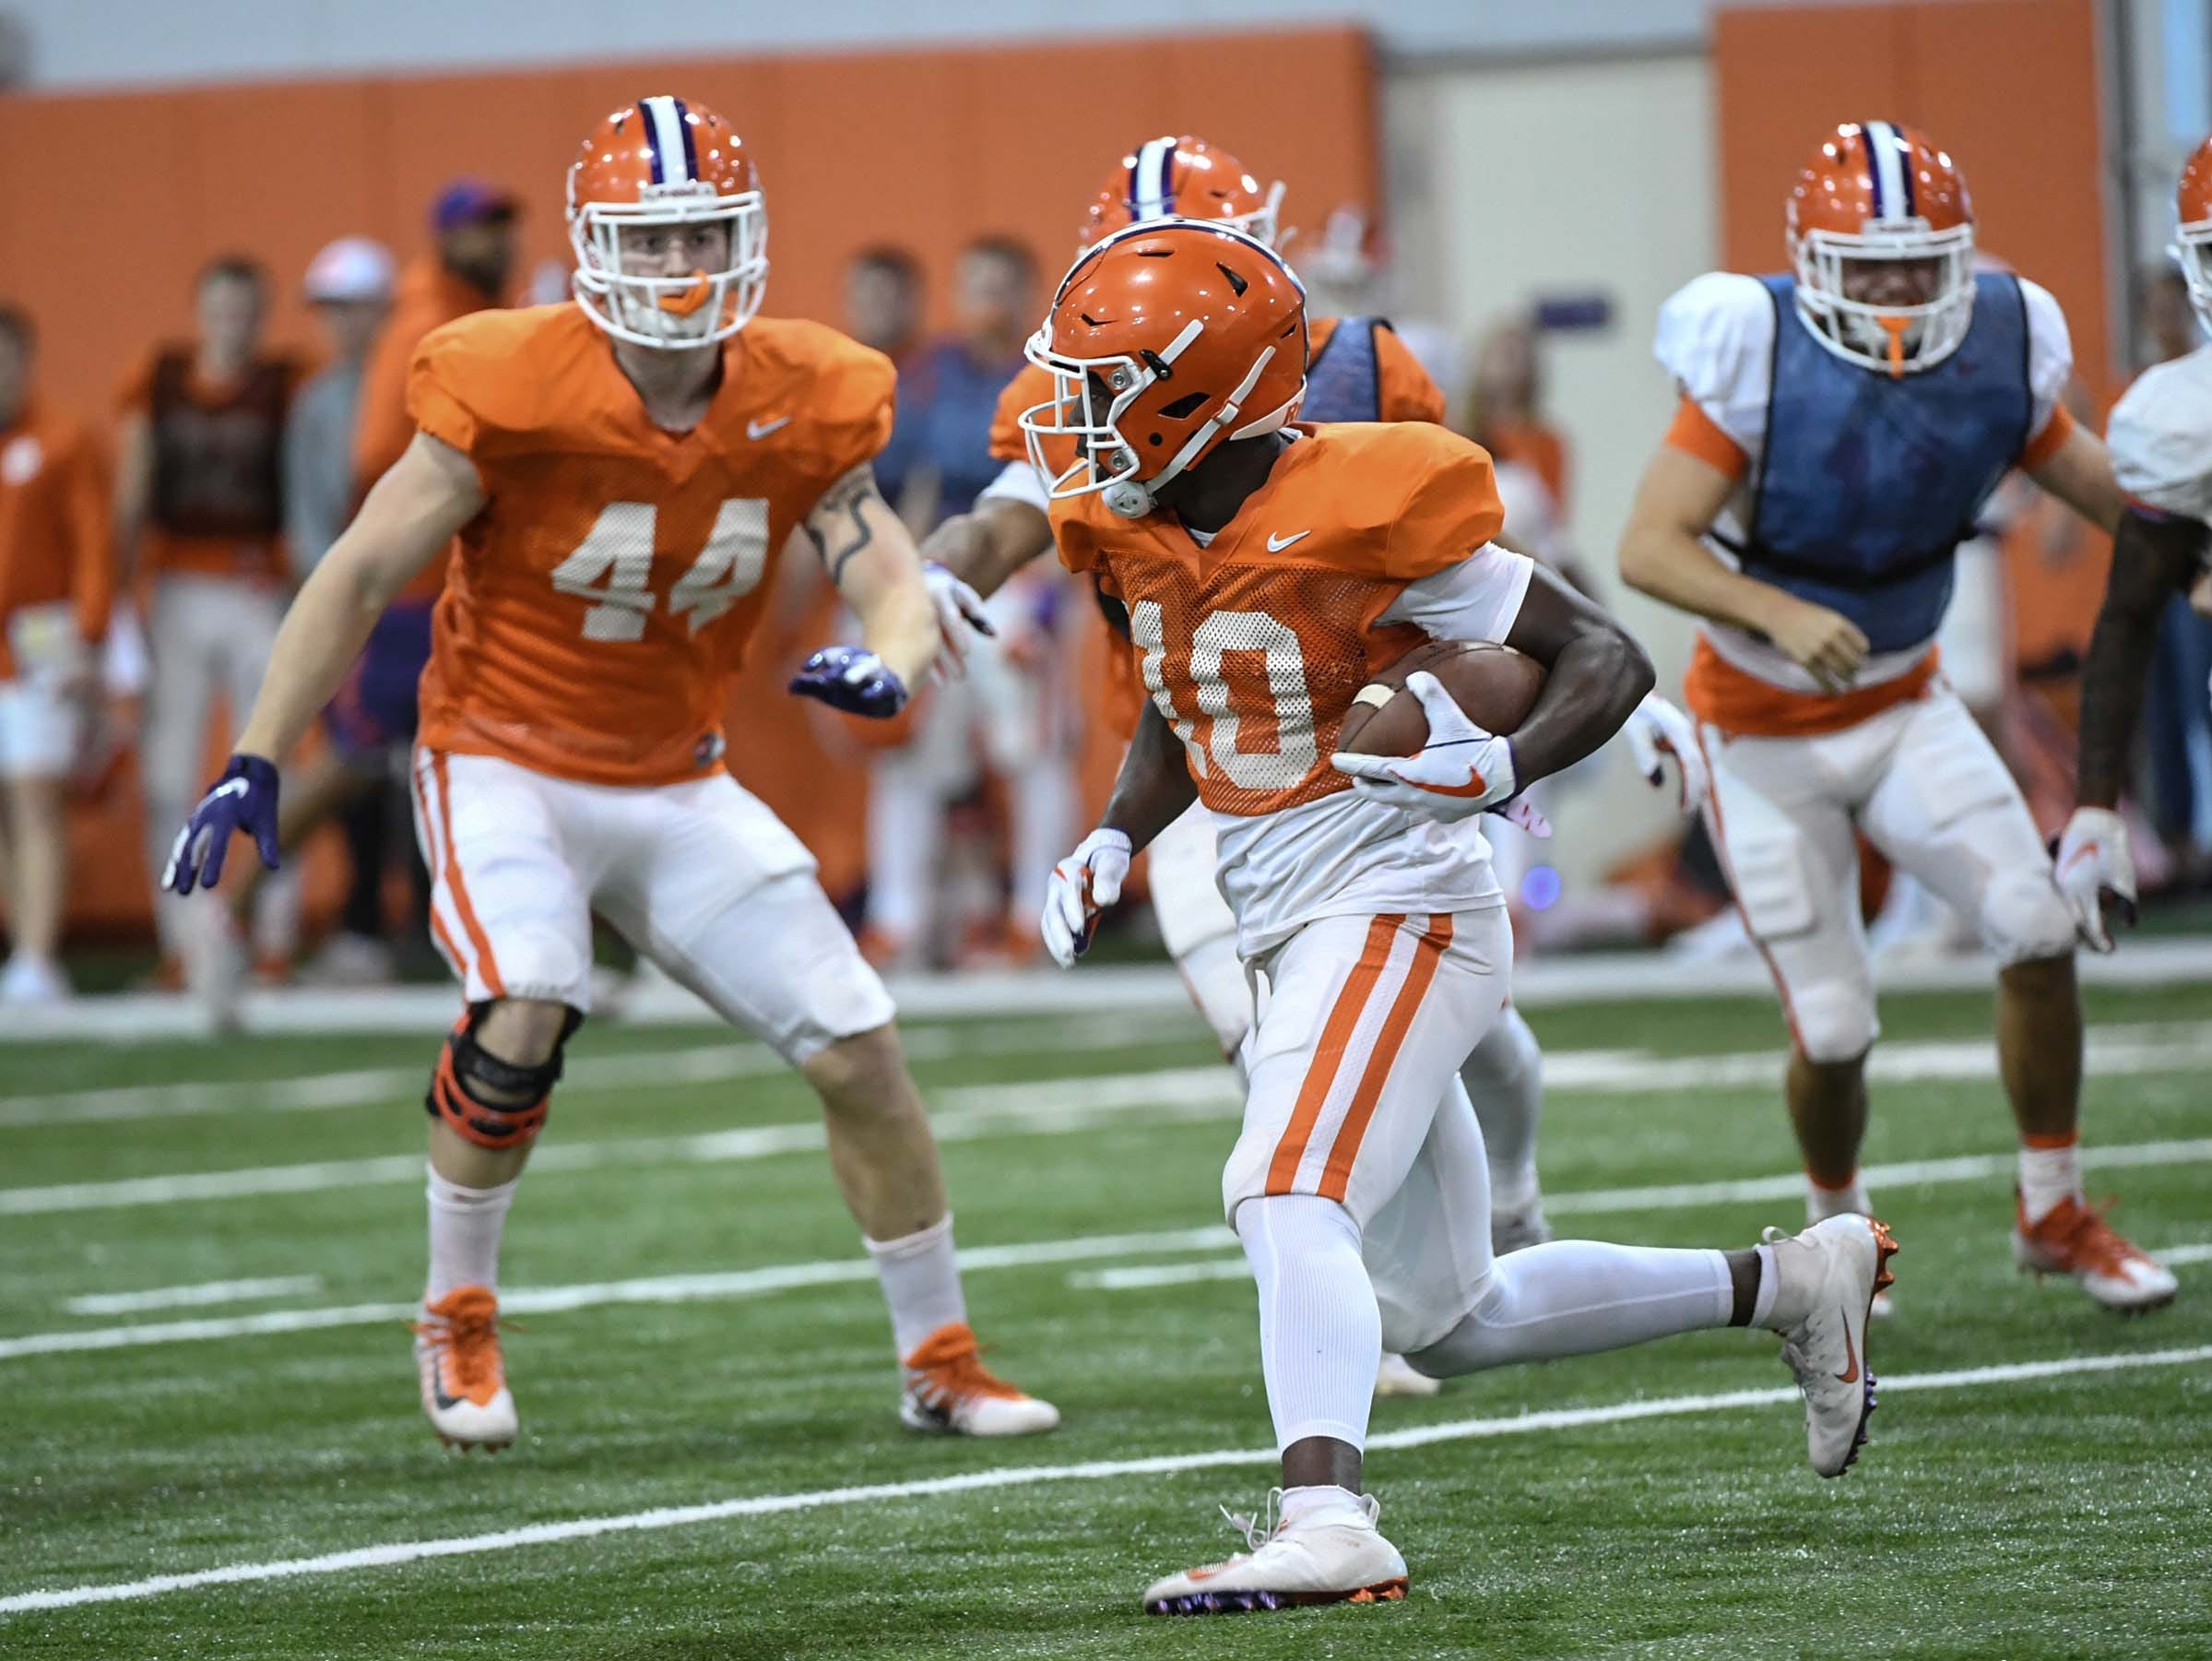 Clemson wide receiver Derion Kendrick (10) returns a kickoff during practice for the Cotton Bowl at the Poe Indoor Facility in Clemson Friday, December 14, 2018.